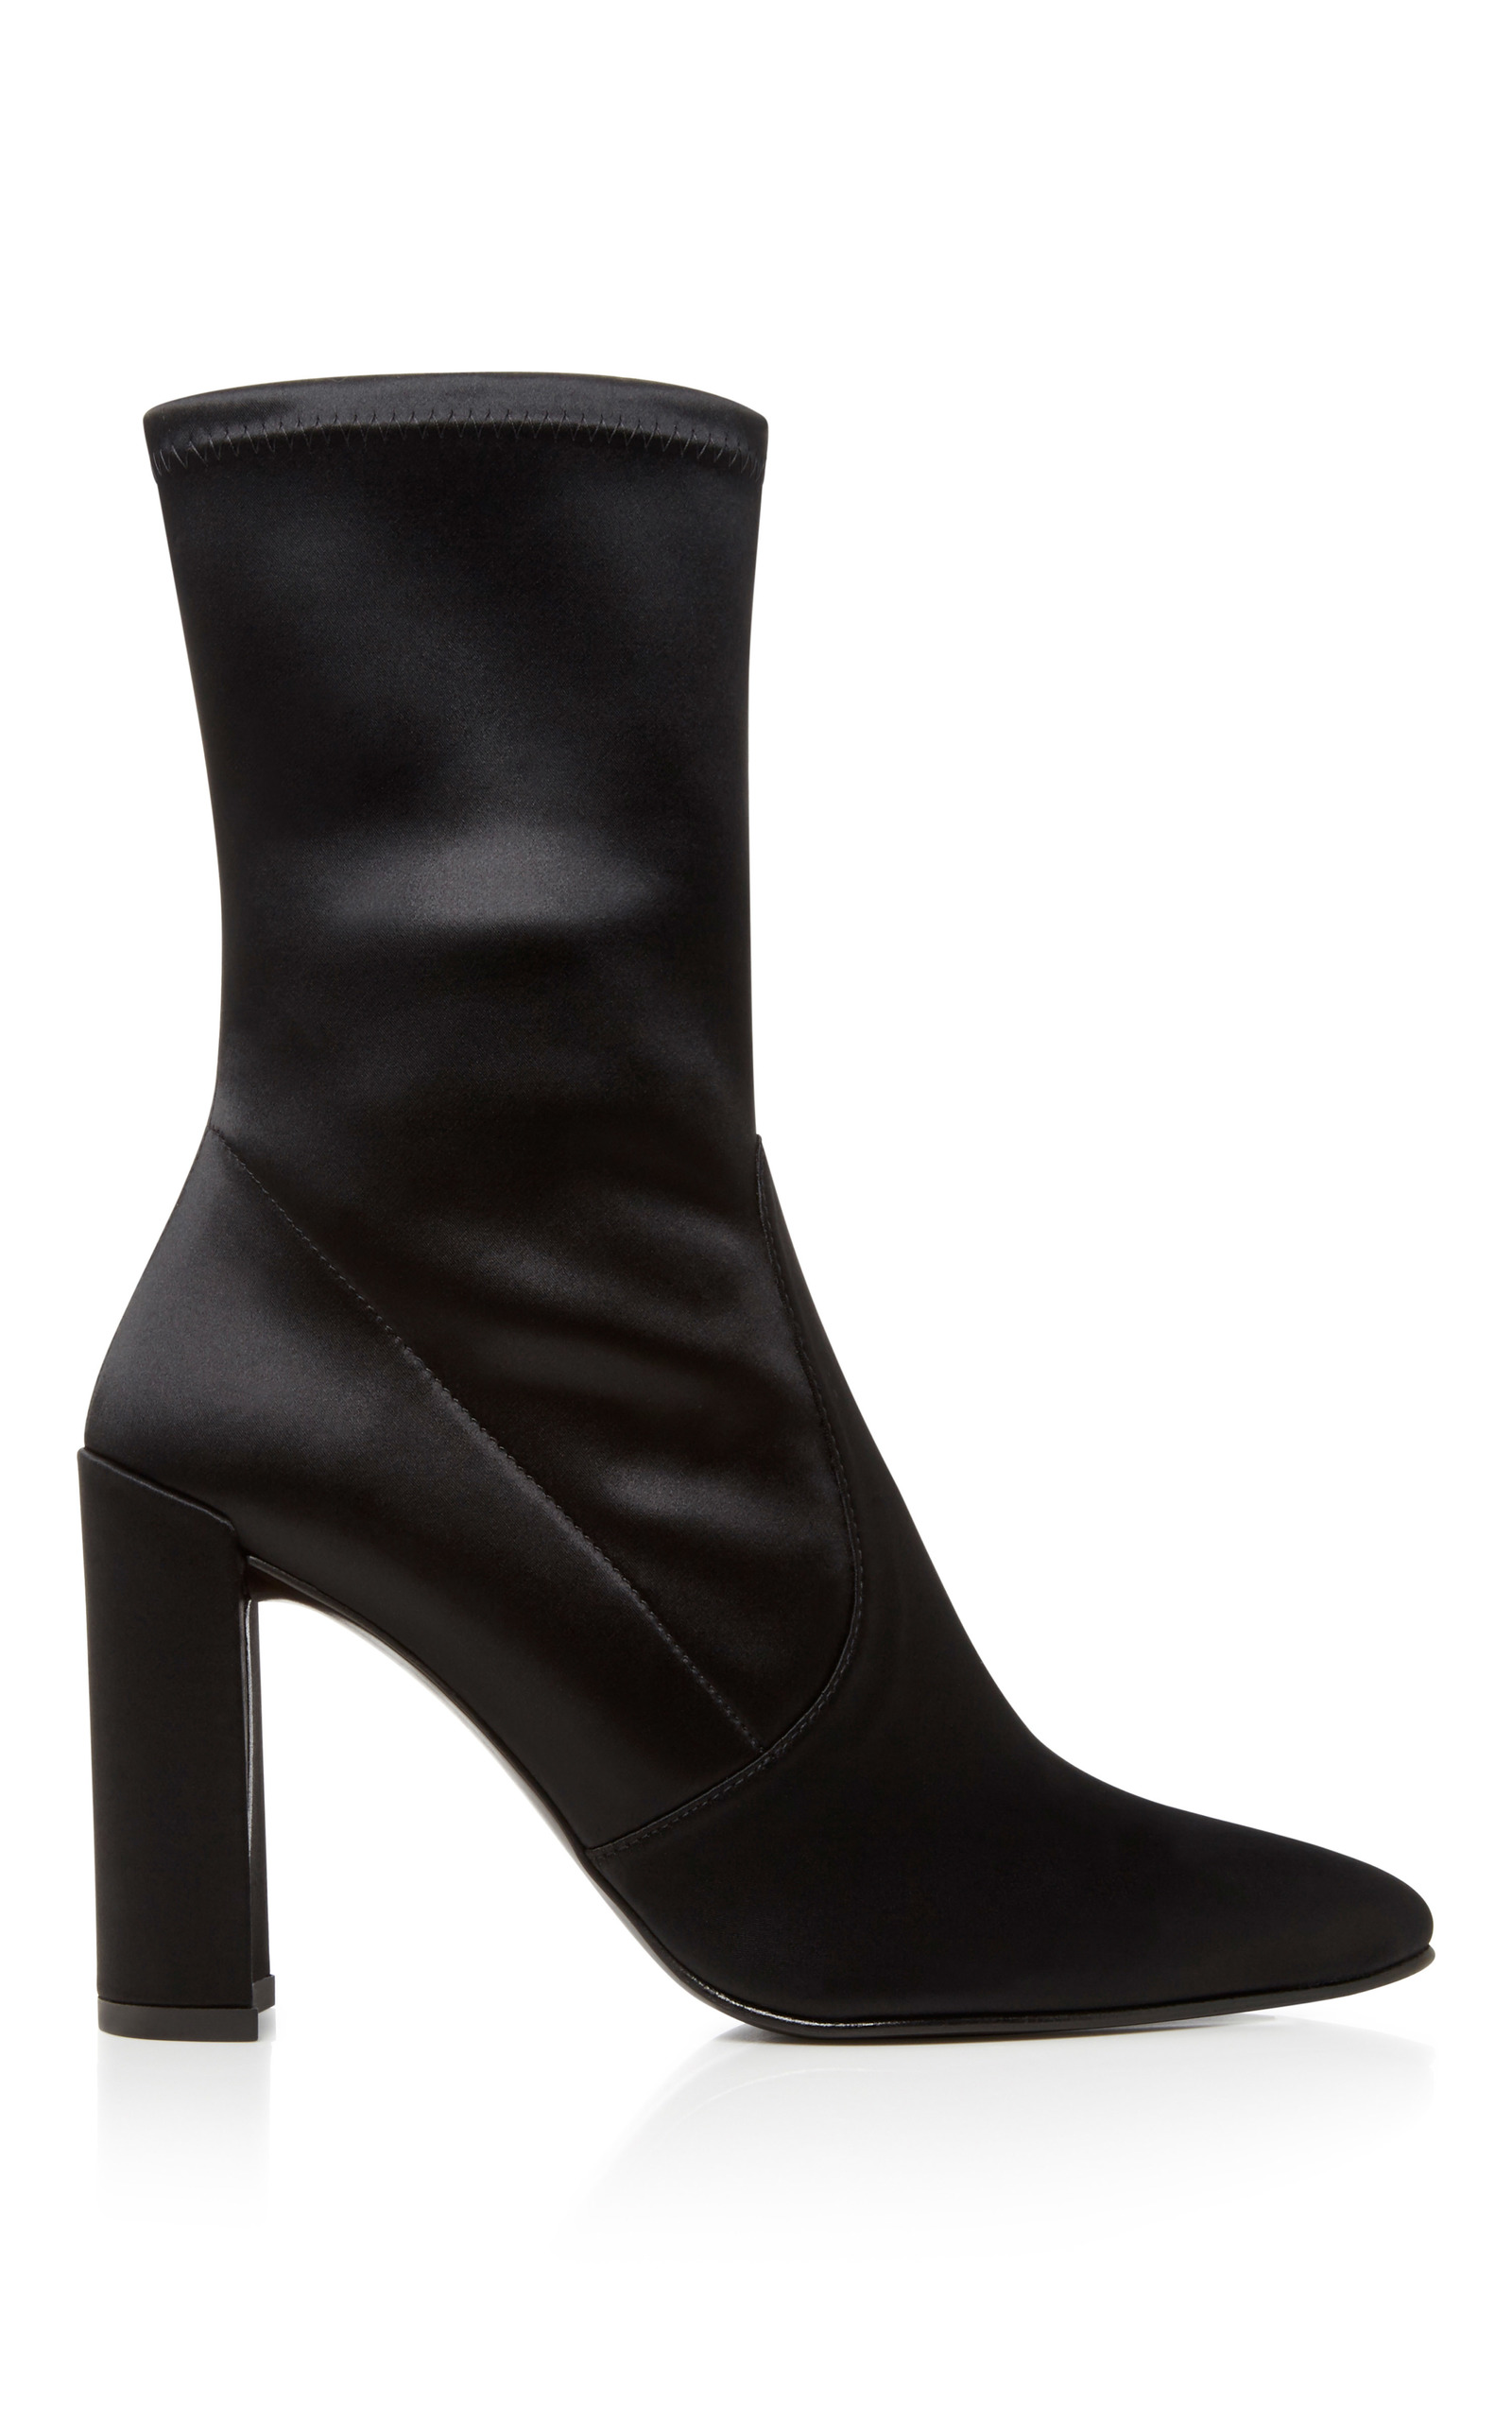 quality from china wholesale Stuart Weitzman Clinger Stretch Satin Pointed Toe Boots cheap big discount Otc8tl